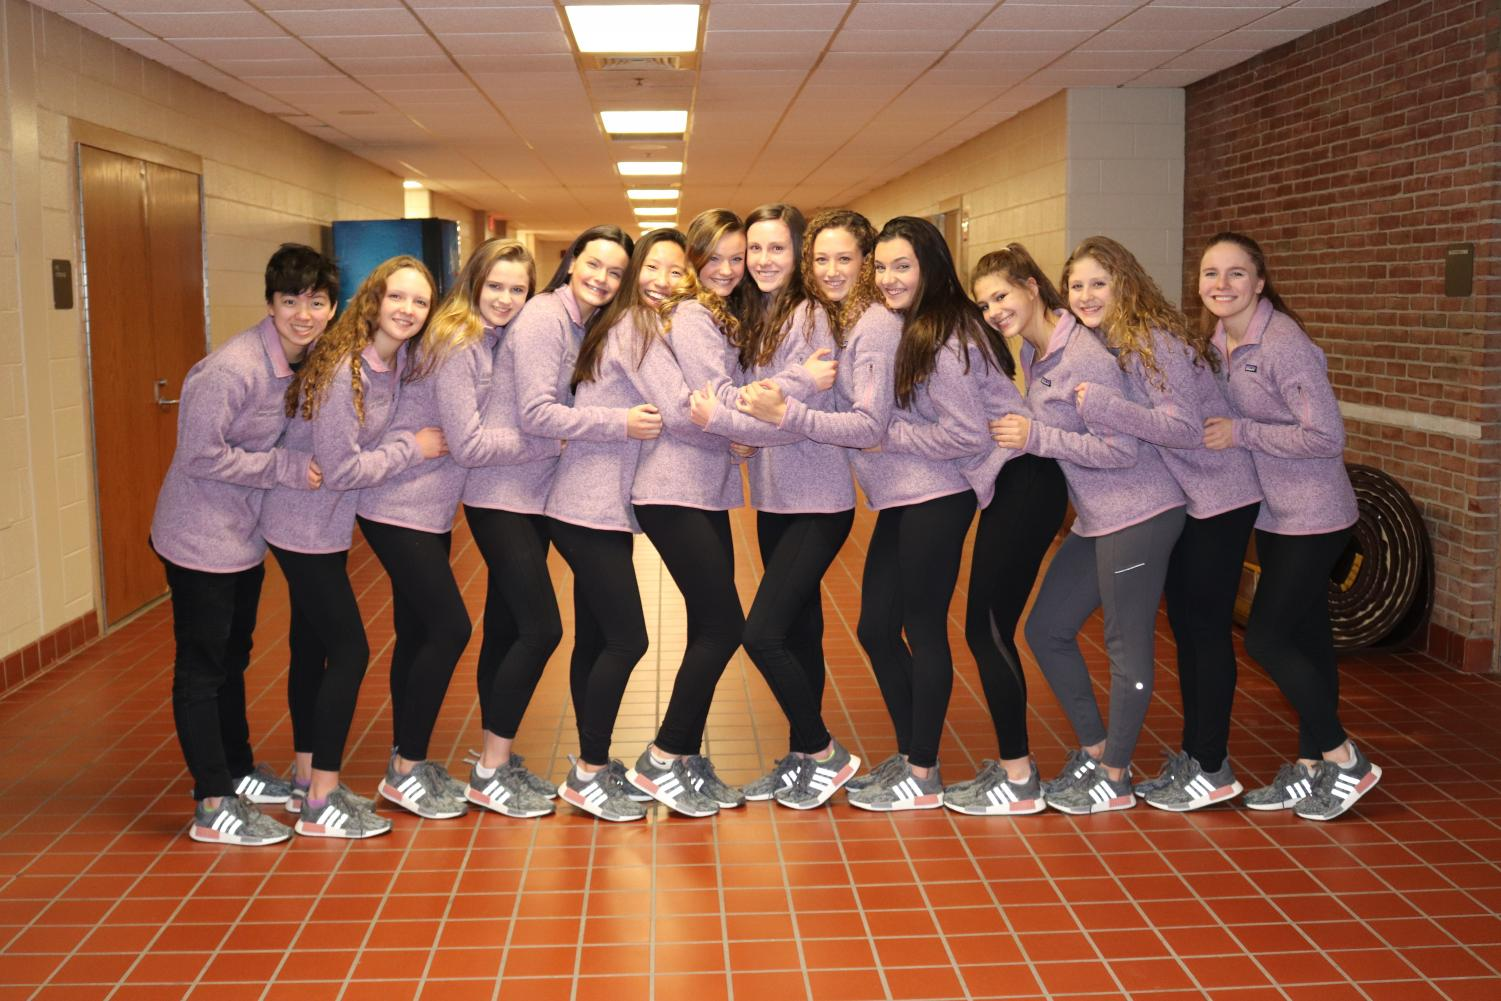 The Adams Varsity Swim and Dive Team  at the State finals: Alisa Kong, Allie Danko, Sarah Cole, Meghan Fleury, Wendy Dong, Maddy Fleury, Alex Waack, Grace McGinnis, Reese McCorry, Mackenzie Humphery, Valentina Rengifo, and Lisa Lohner.